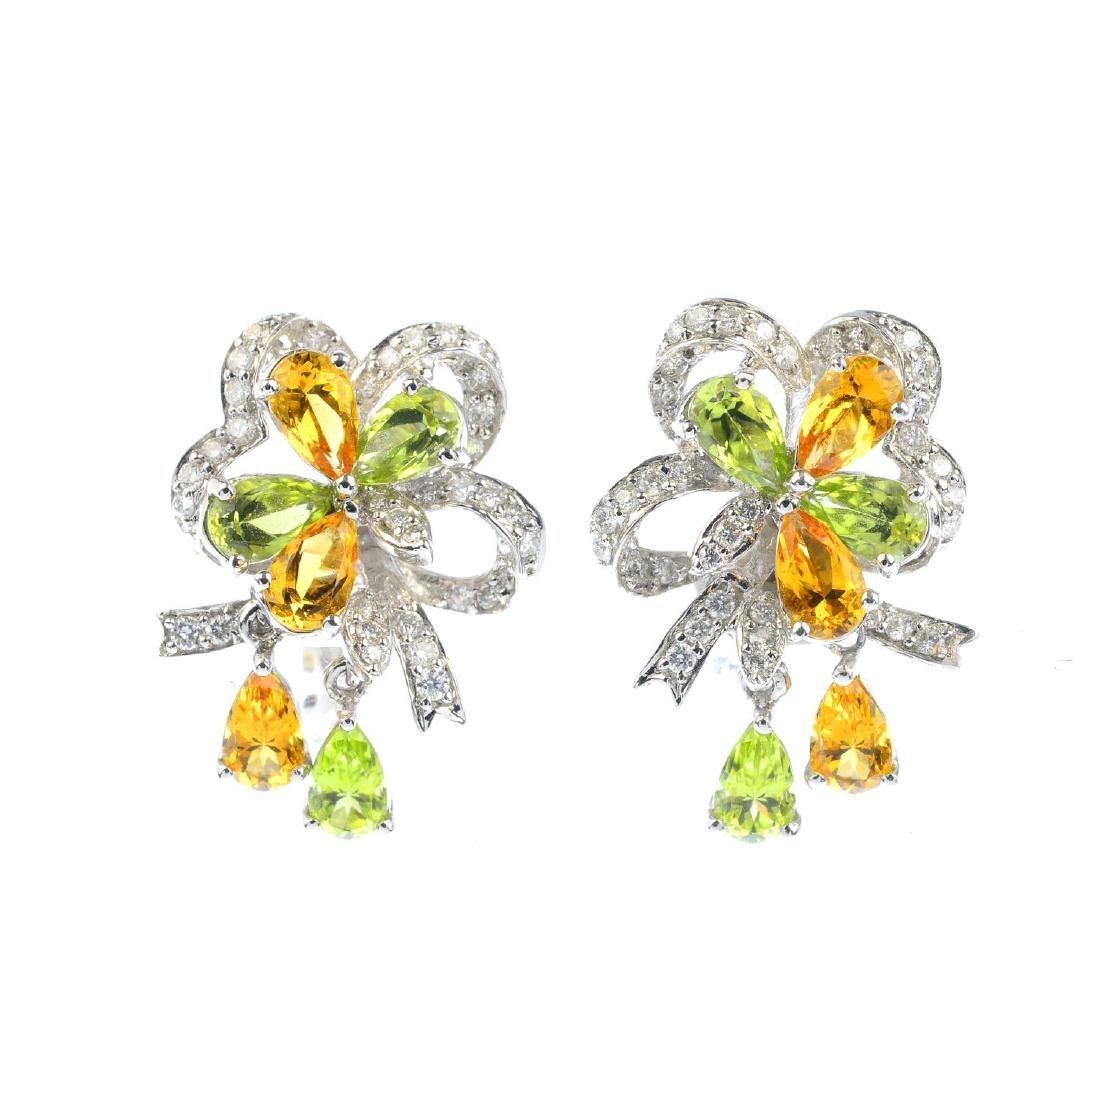 A pair of diamond, peridot and citrine earrings. Each